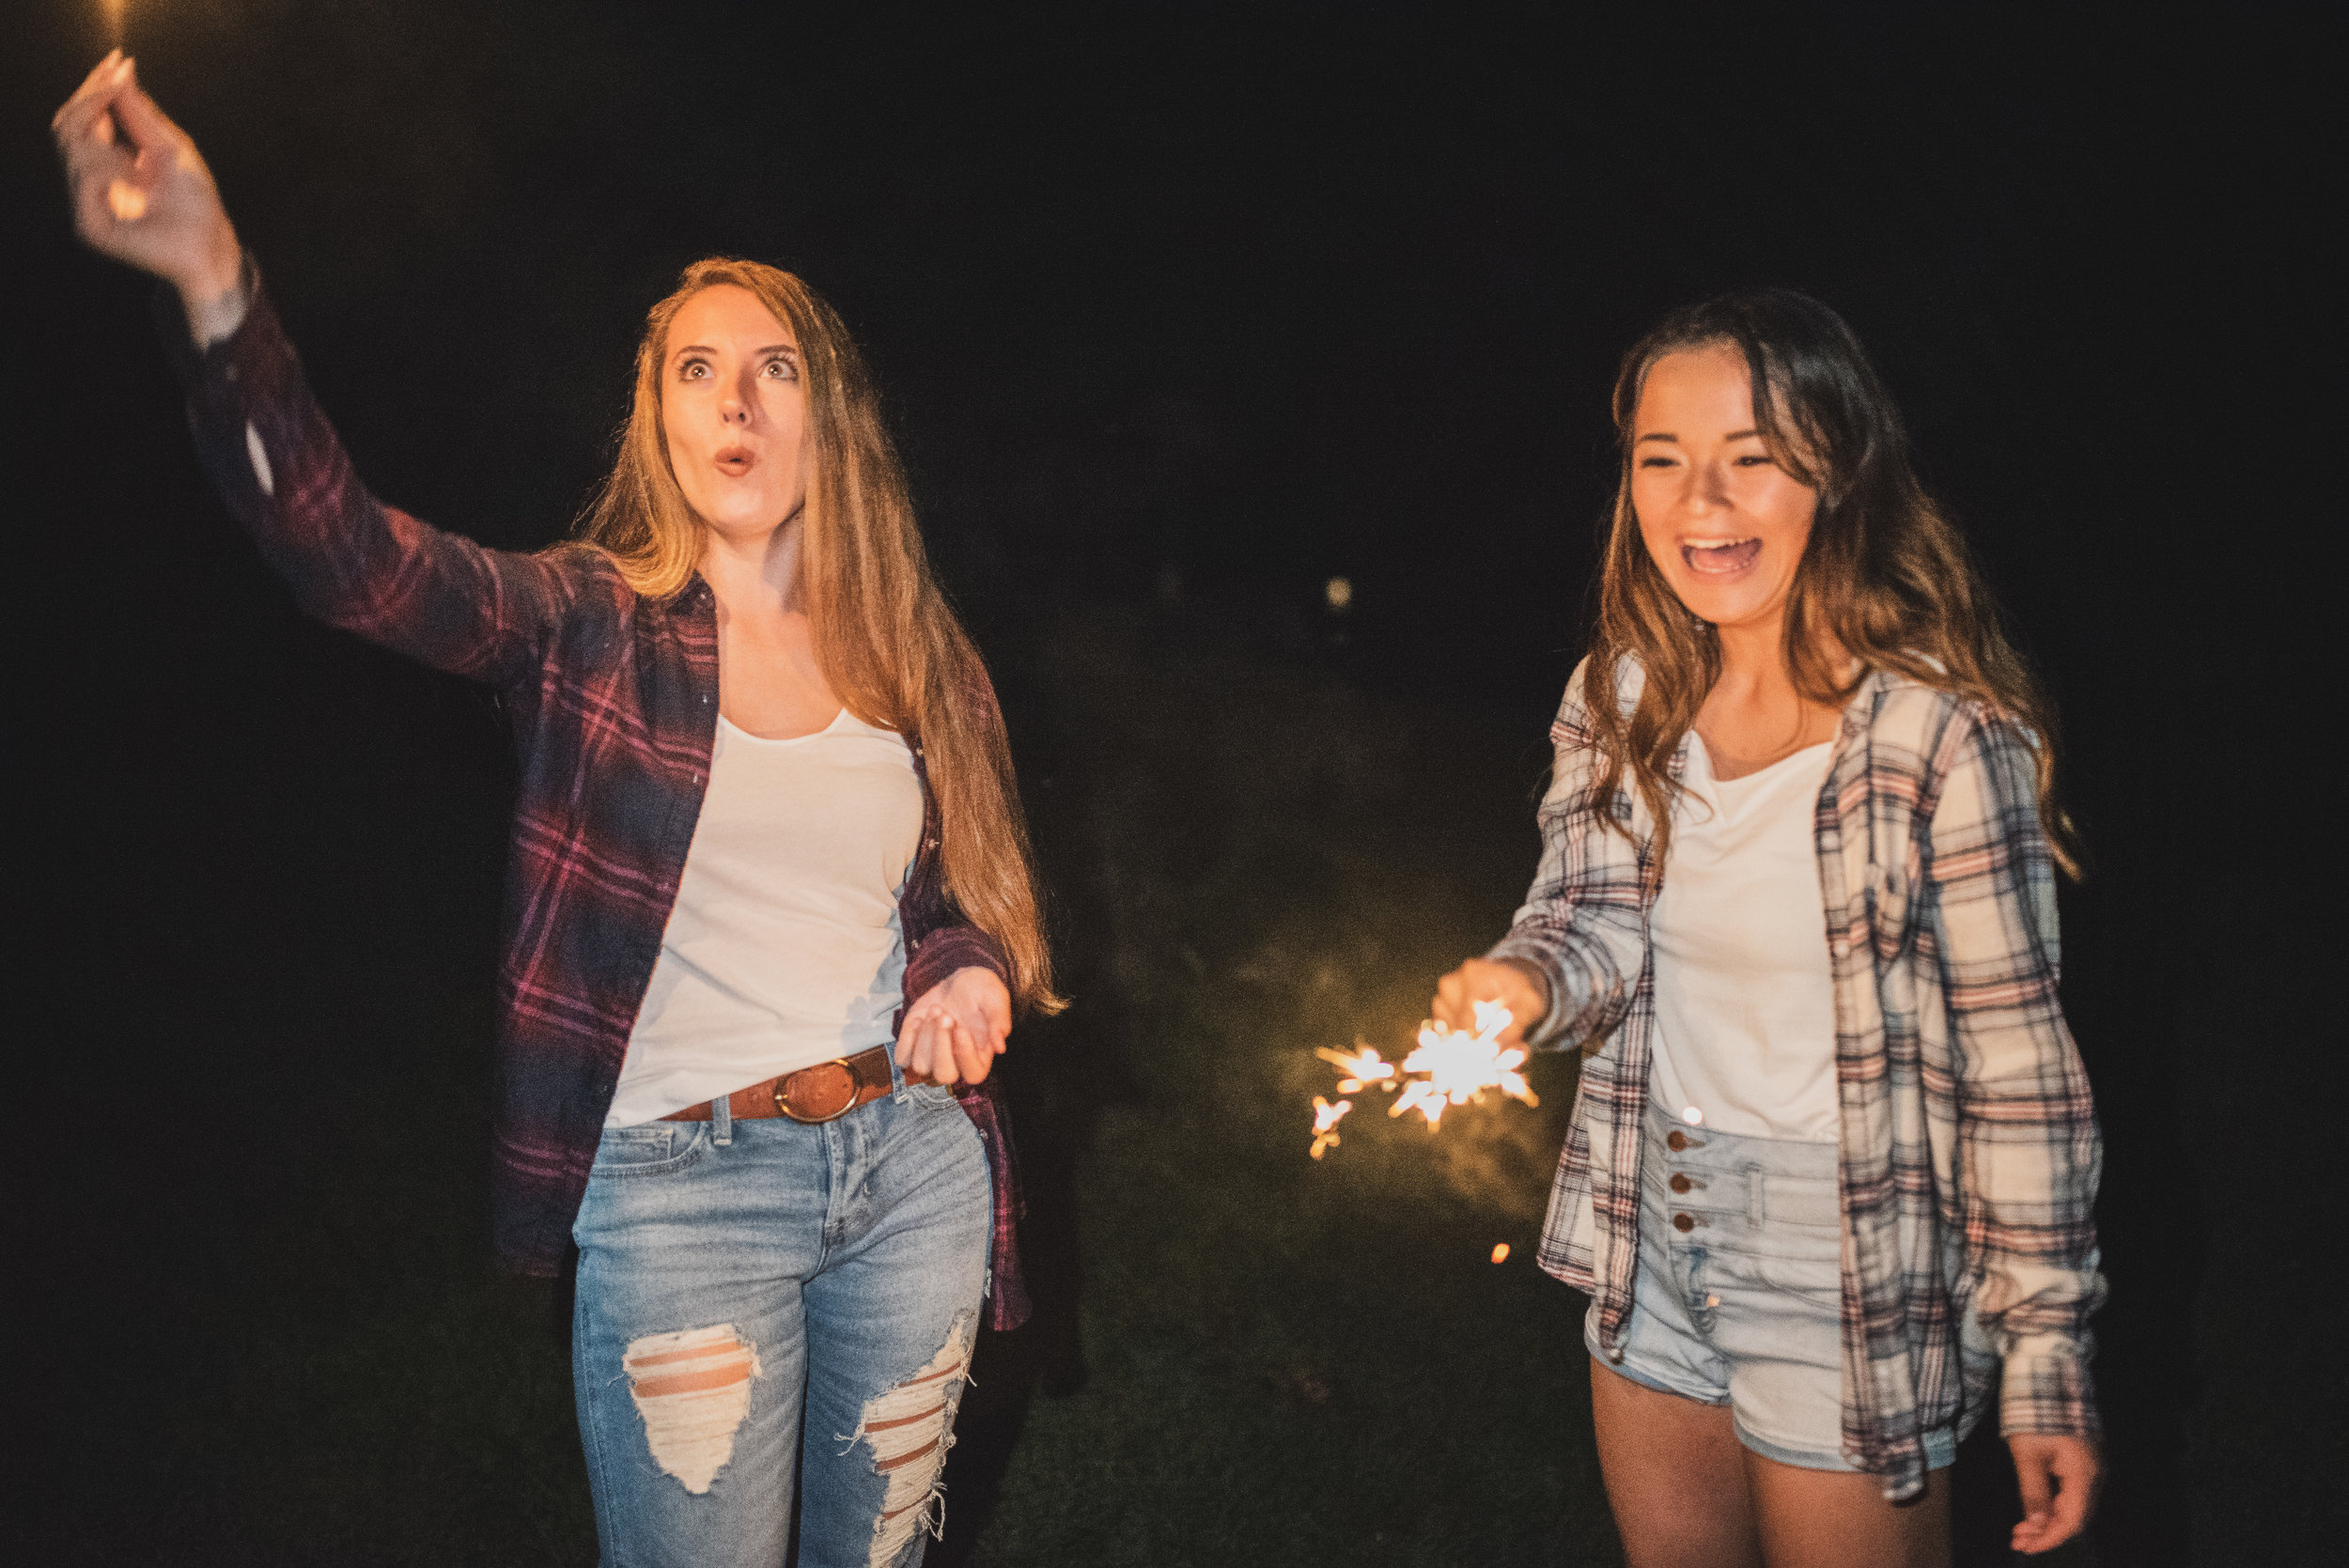 Sunsets_And_Sparklers-13.jpg